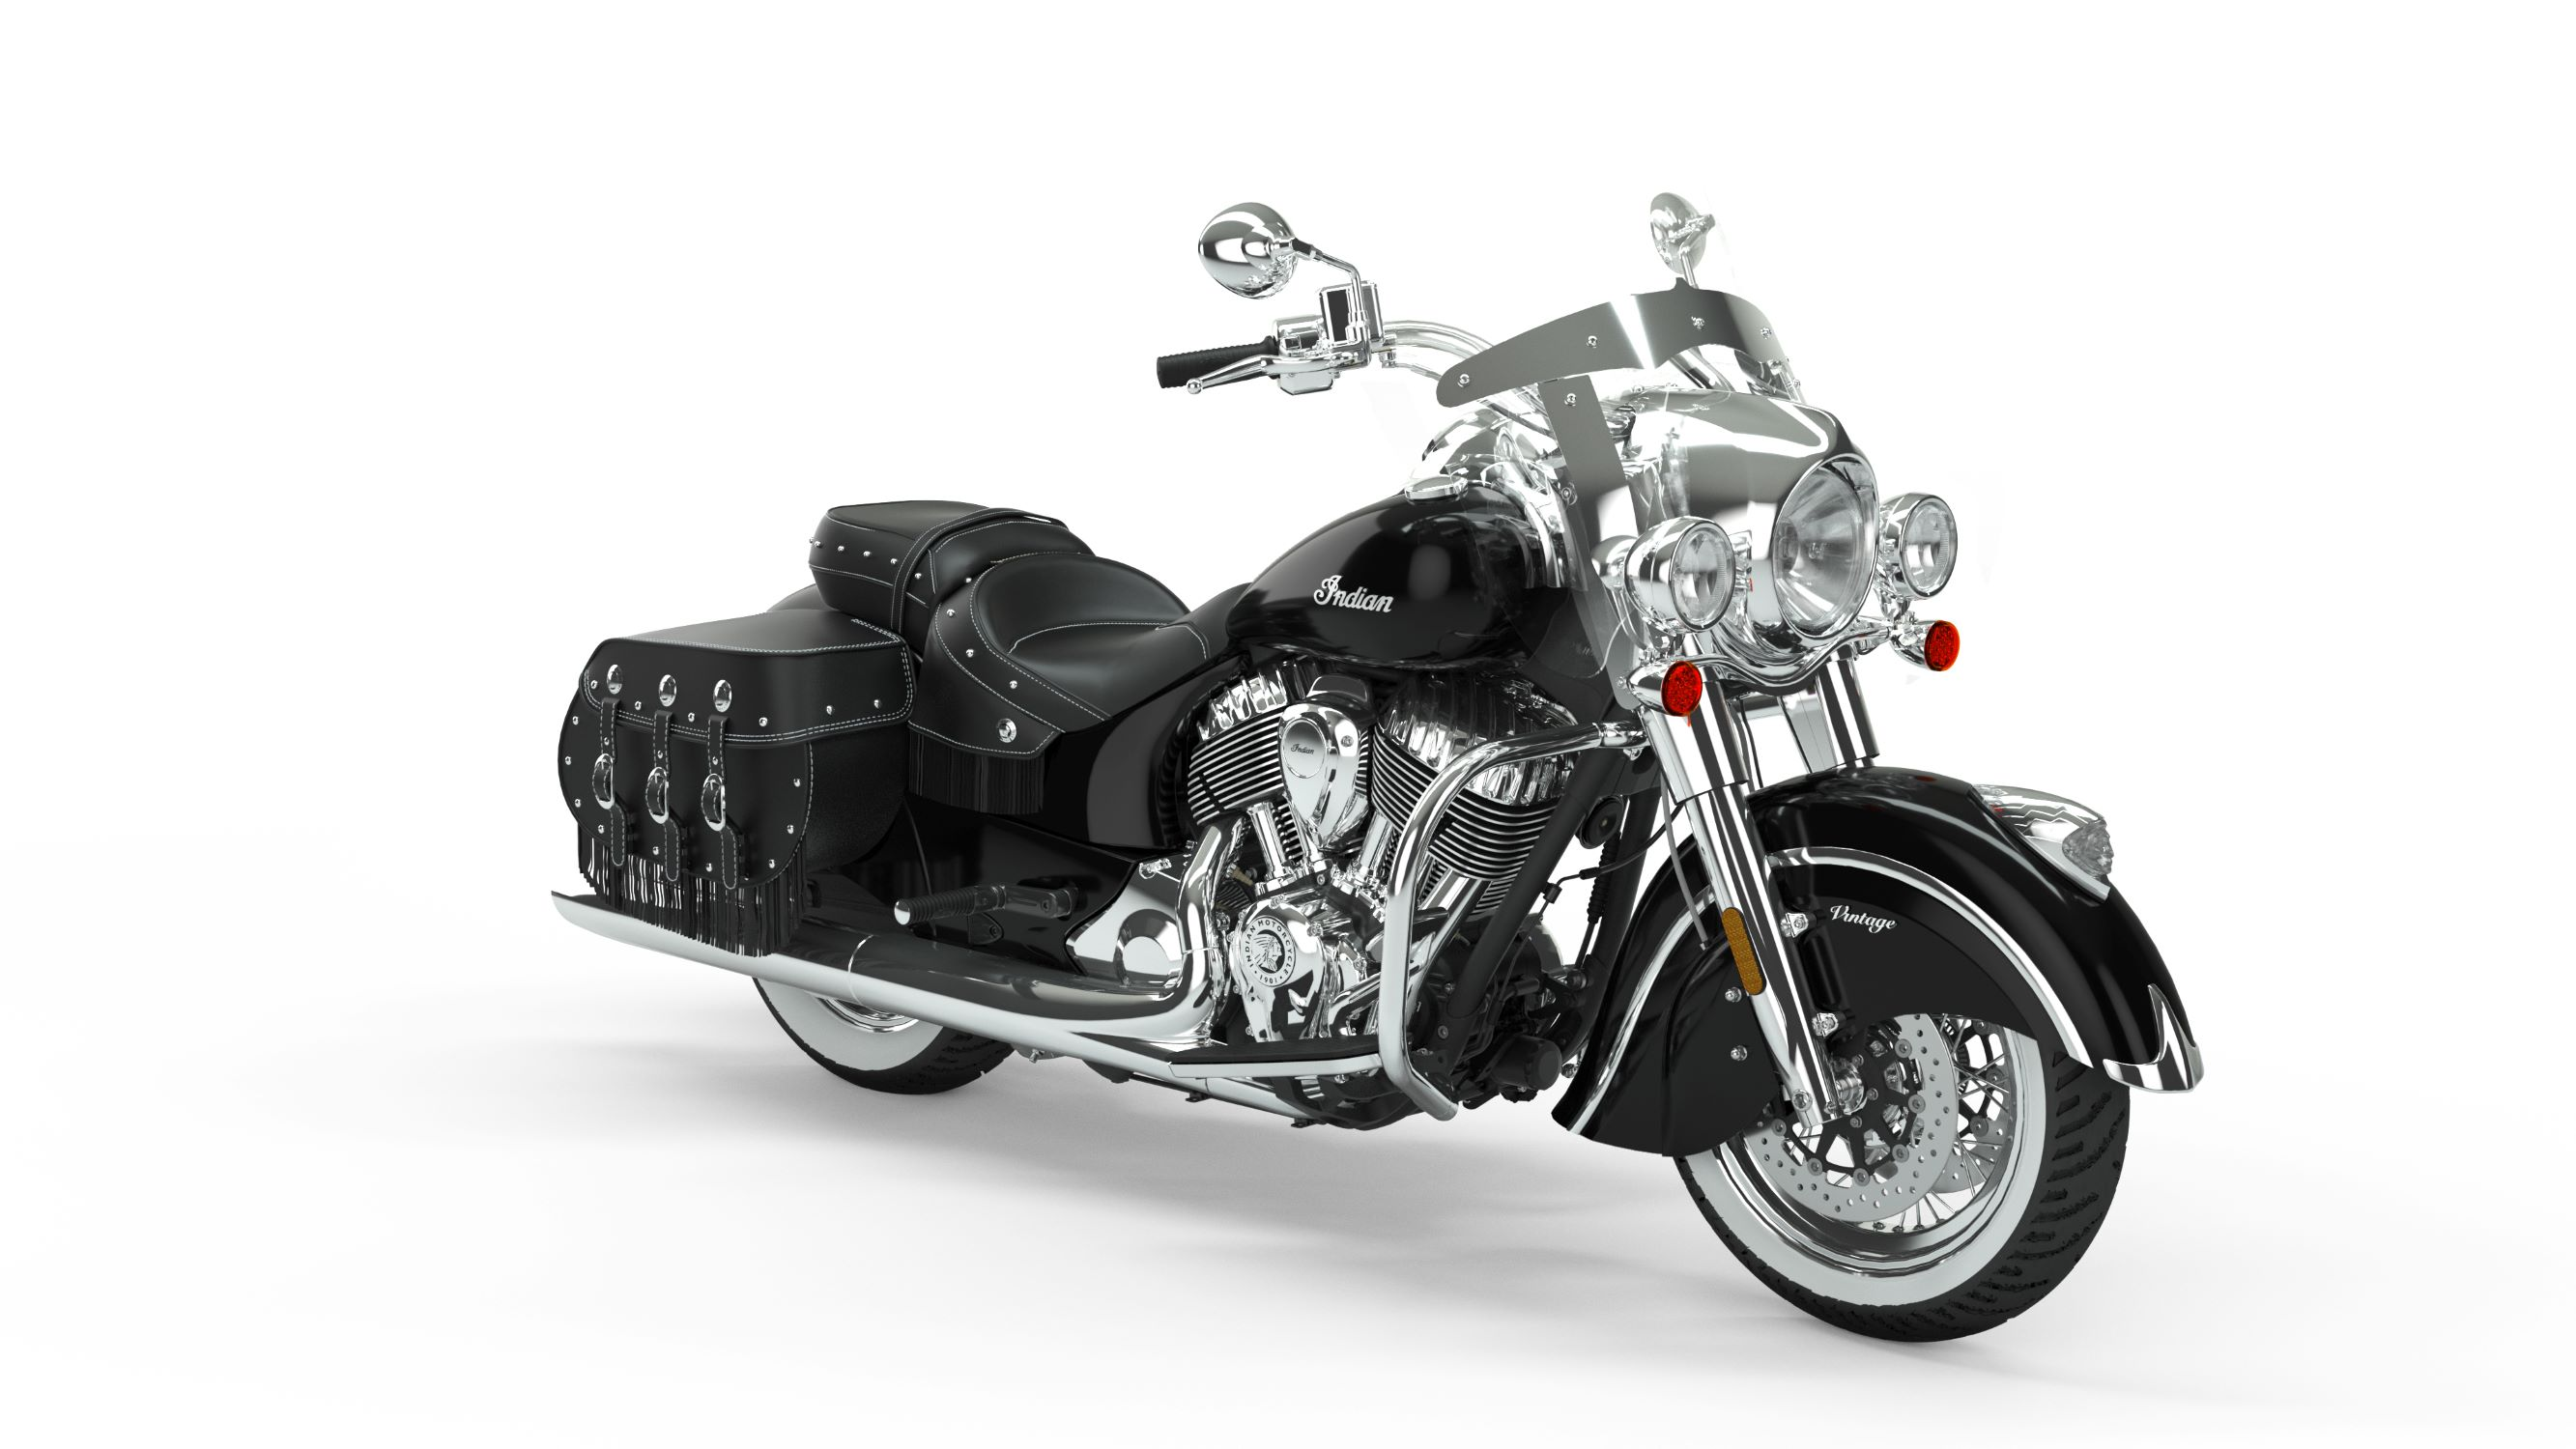 2019 Indian Chief Vintage Thunder Black Front Right 3Q